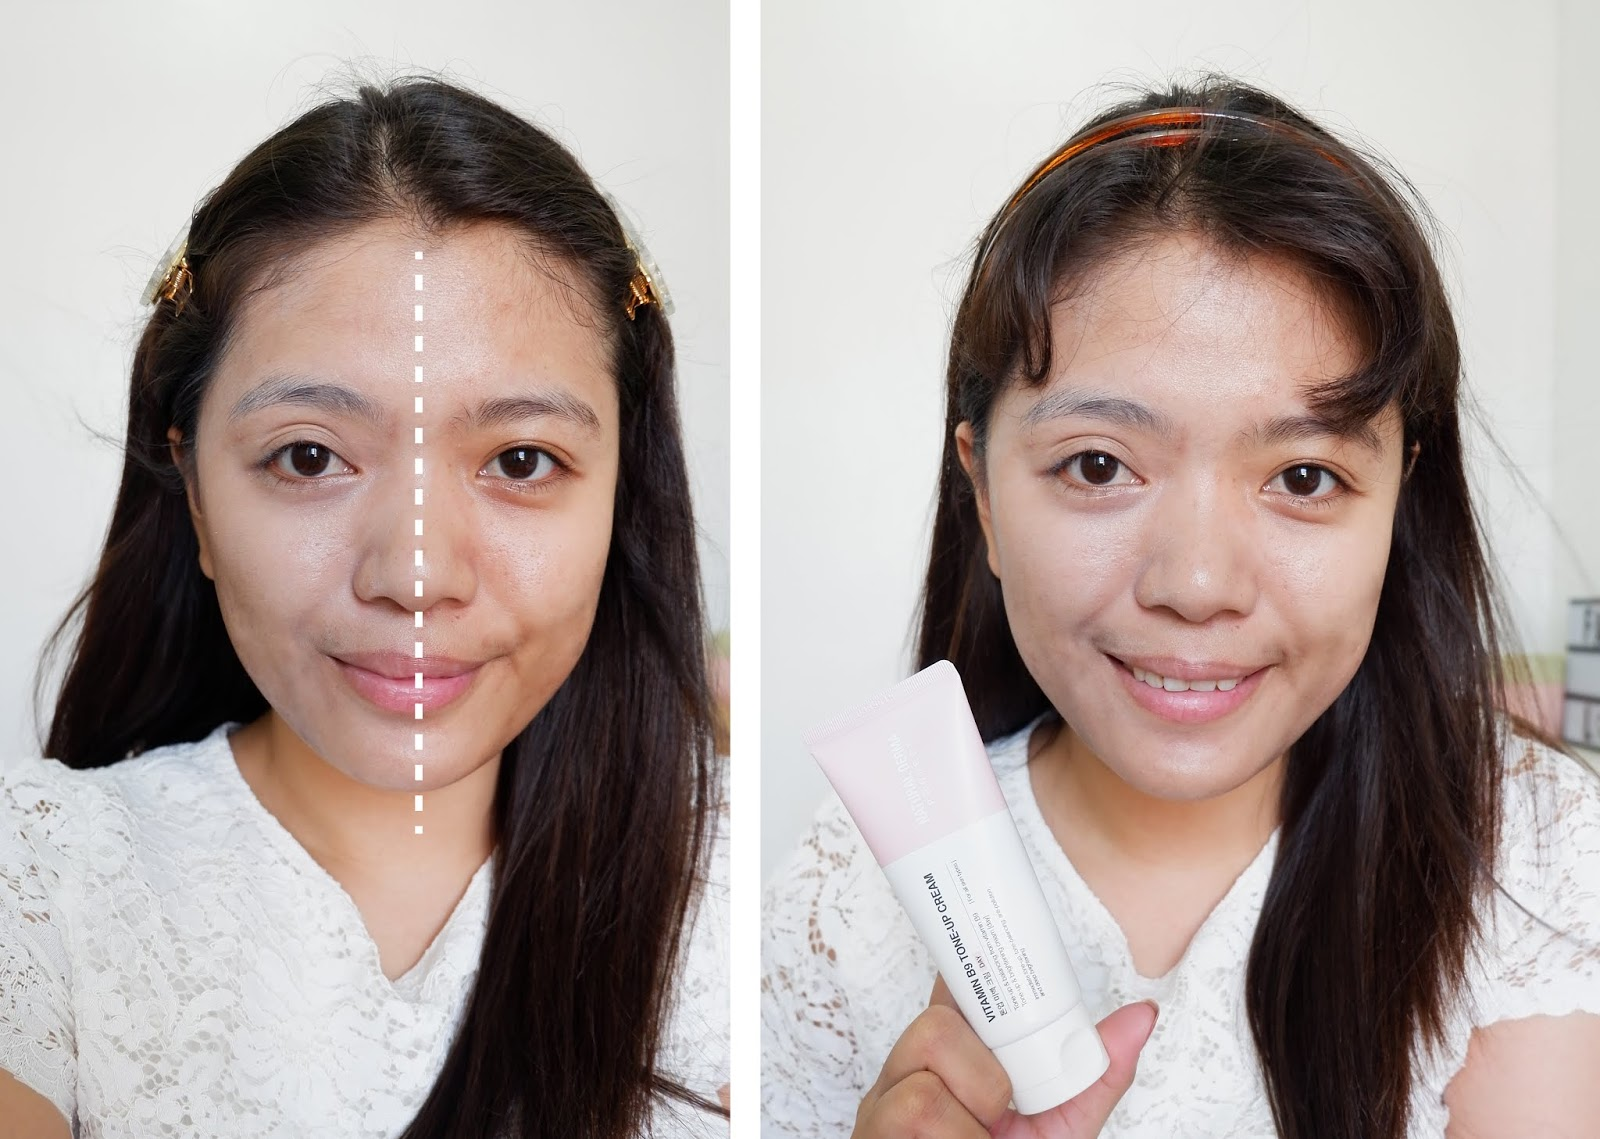 NATURAL DERMA PROJECT: VITAMIN B9 TONE-UP CREAM REVIEW